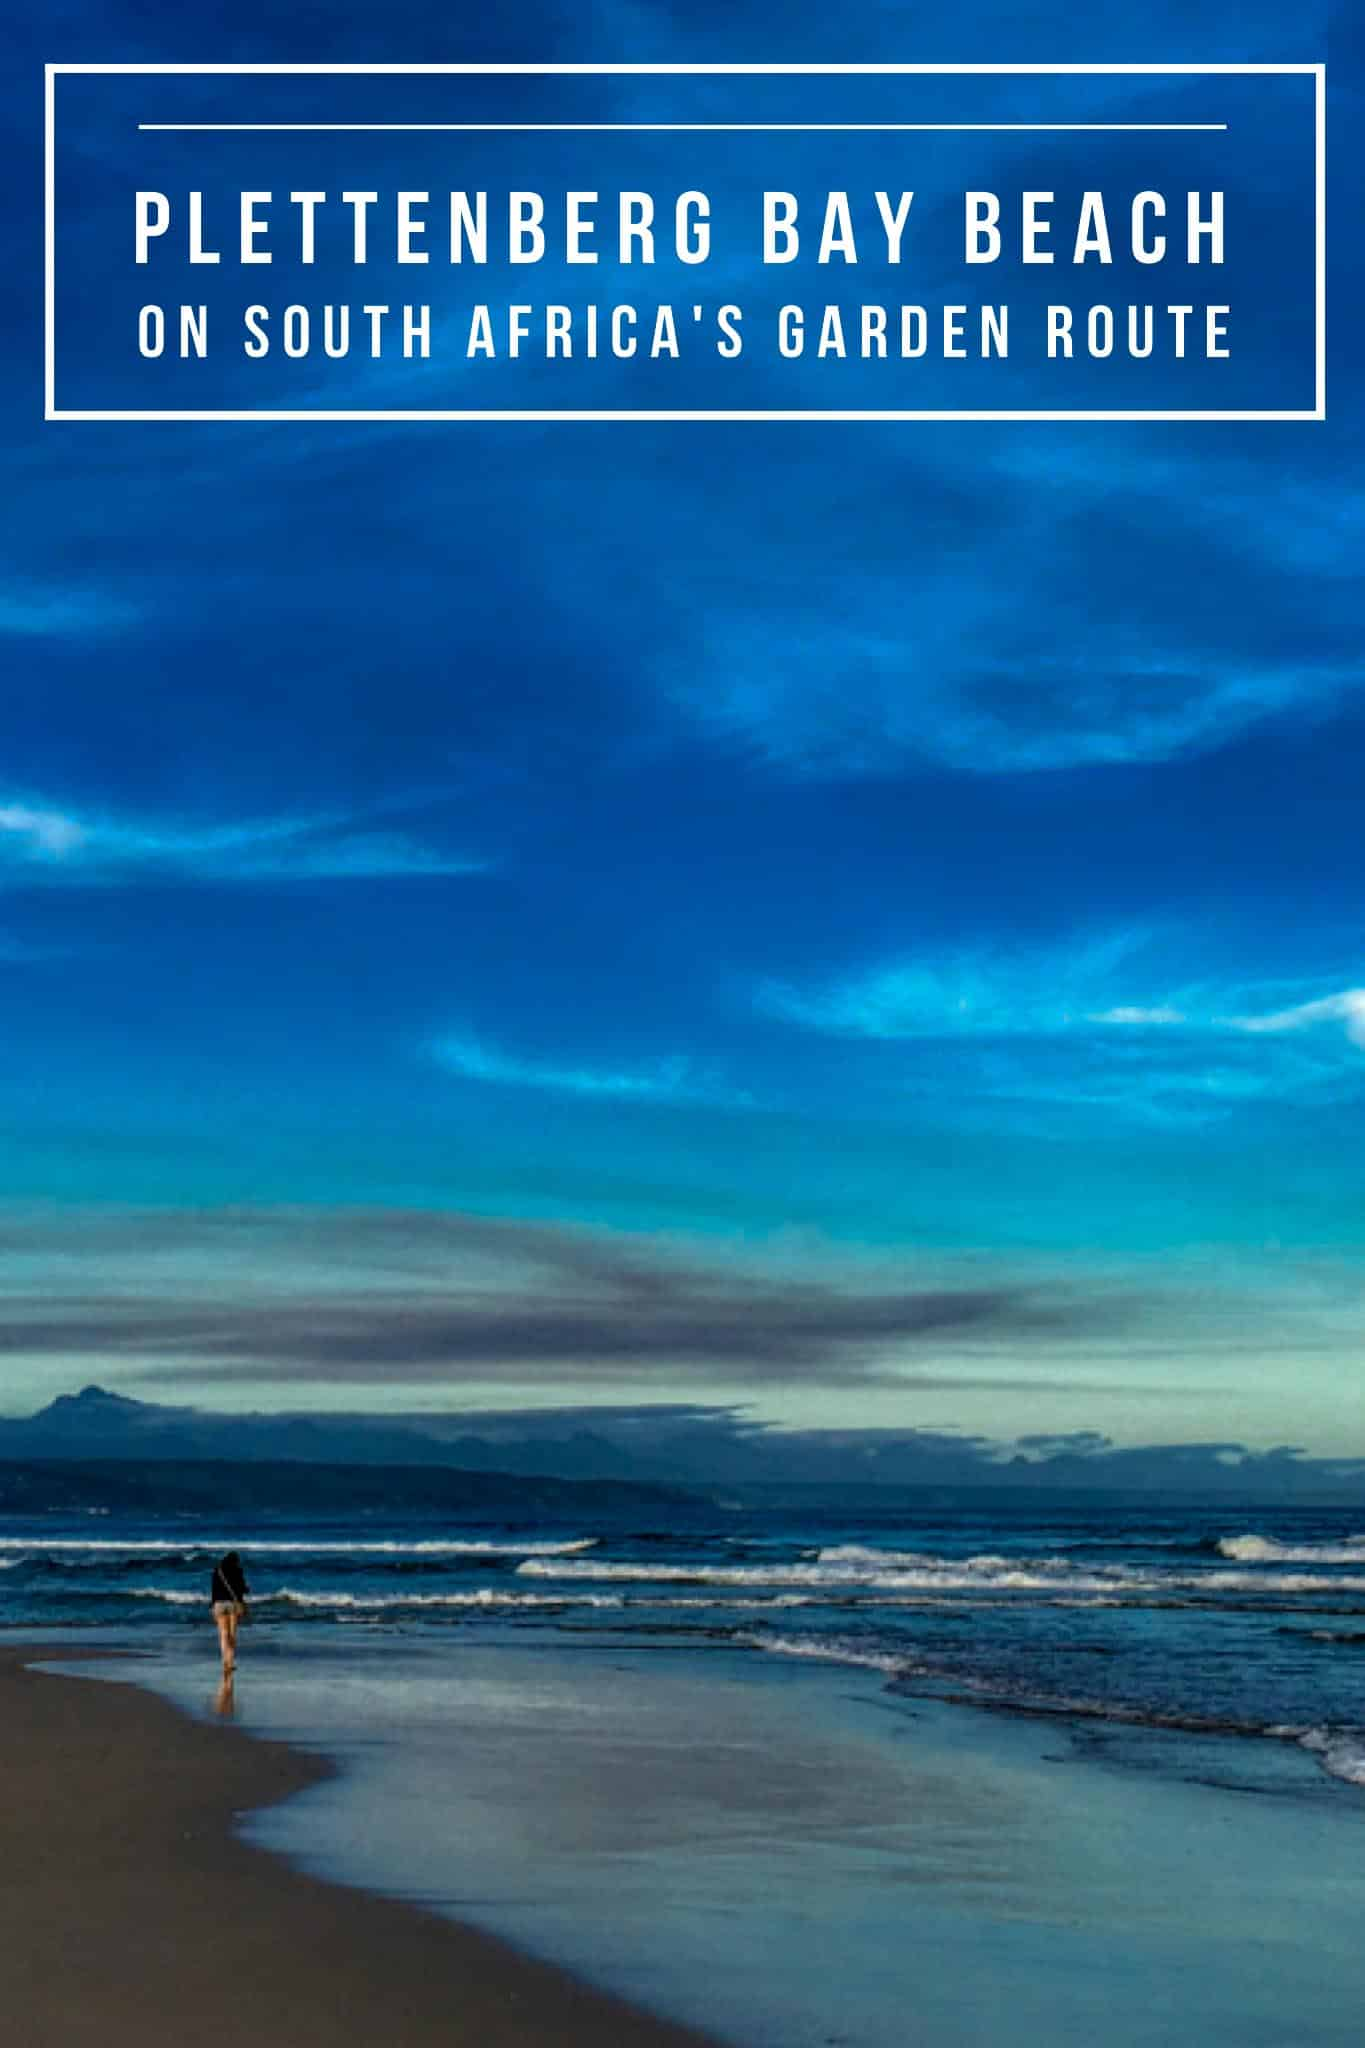 The Garden Route   South Africa   Sunsets   Beach Destination   Plettenberg Bay South Africa   Plettenberg Bay Restaurants   Things to Do in Plettenberg Bay   #GardenRoute #Plettenberg #SouthAfrica #SouthAfricaTravel